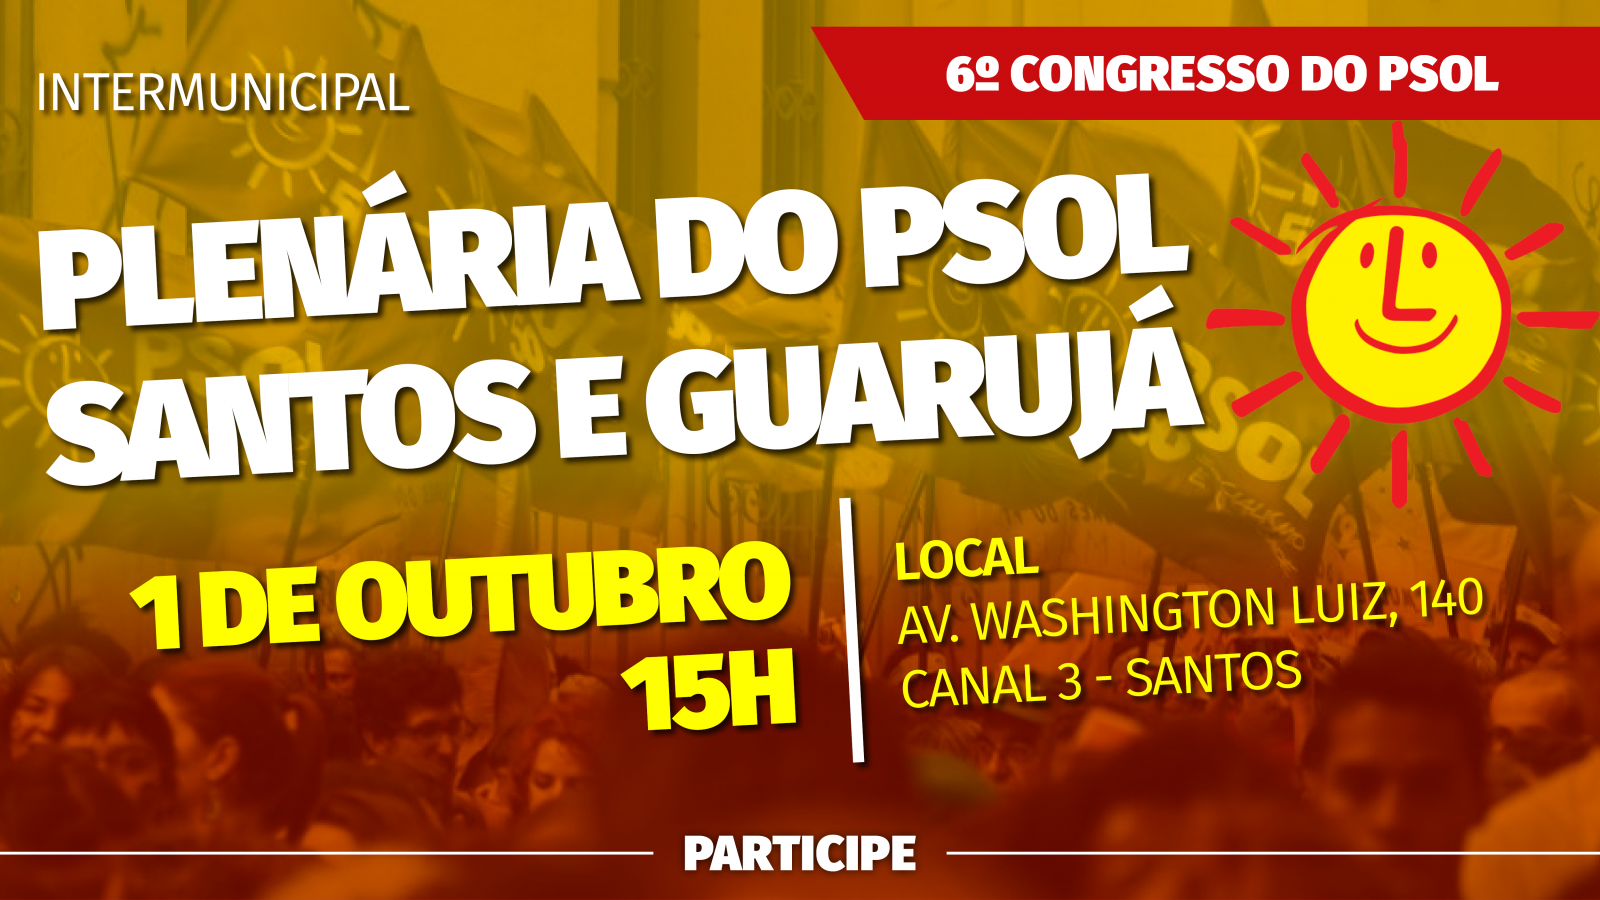 Plenária intermunicipal do PSOL Santos e Guarujá no domingo(1/10)